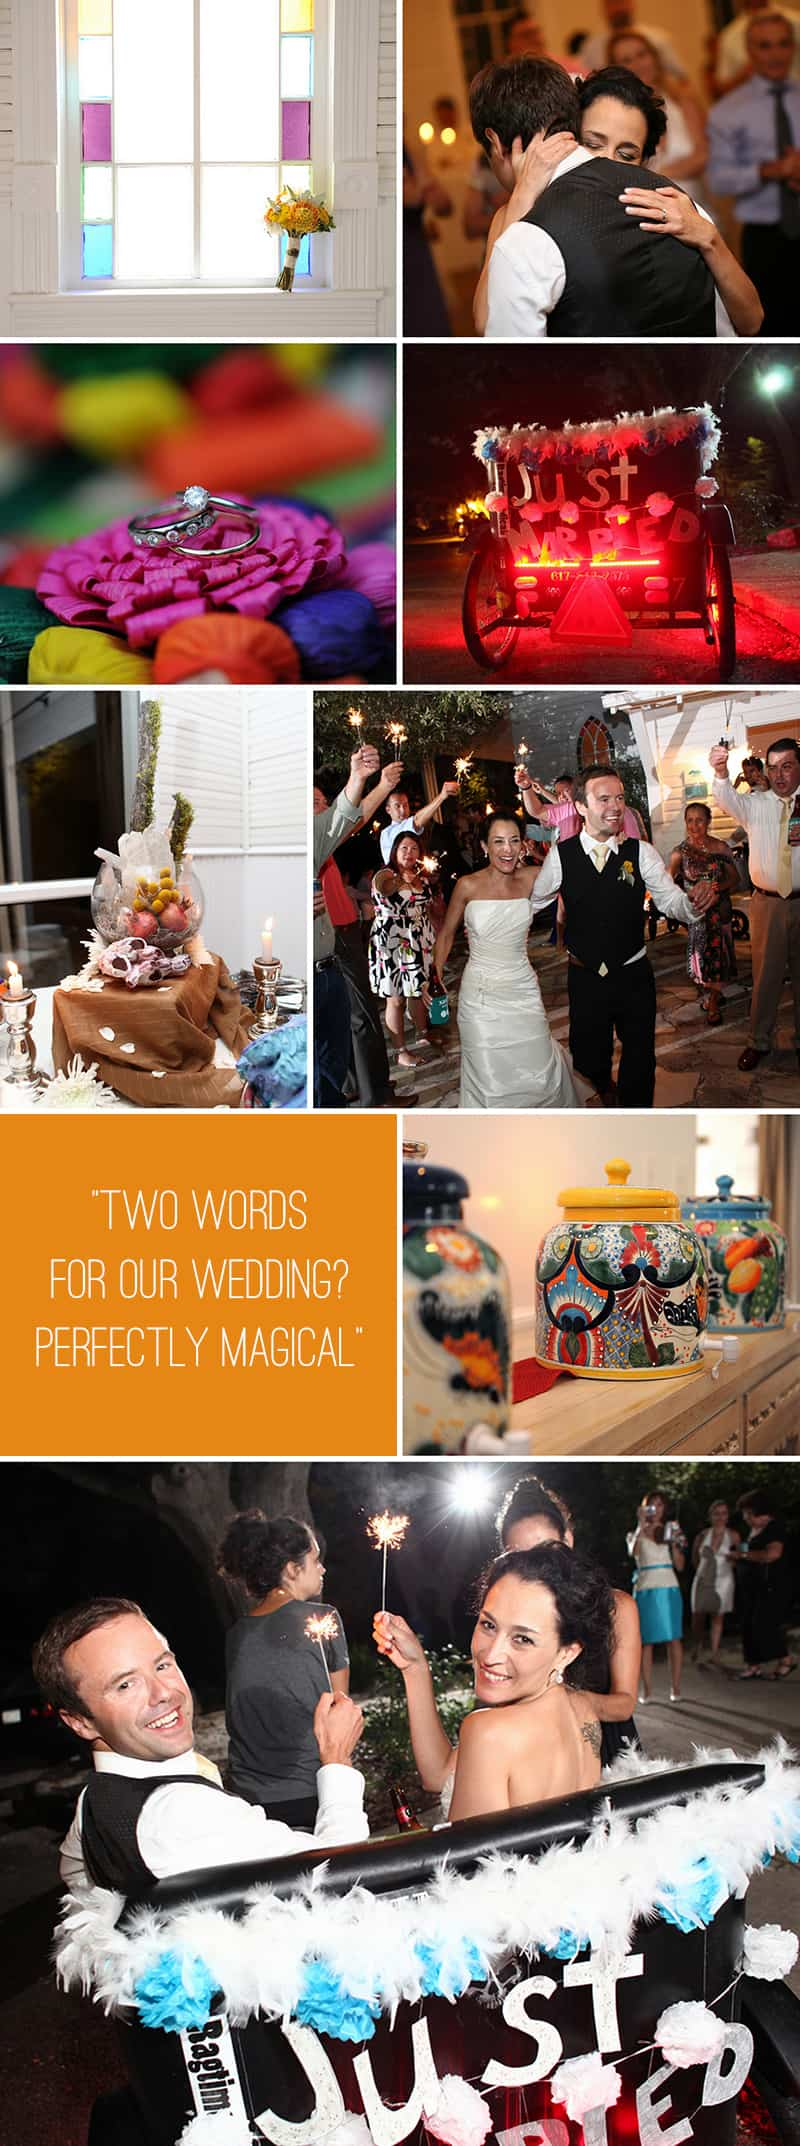 Mexican Themed wedding 7